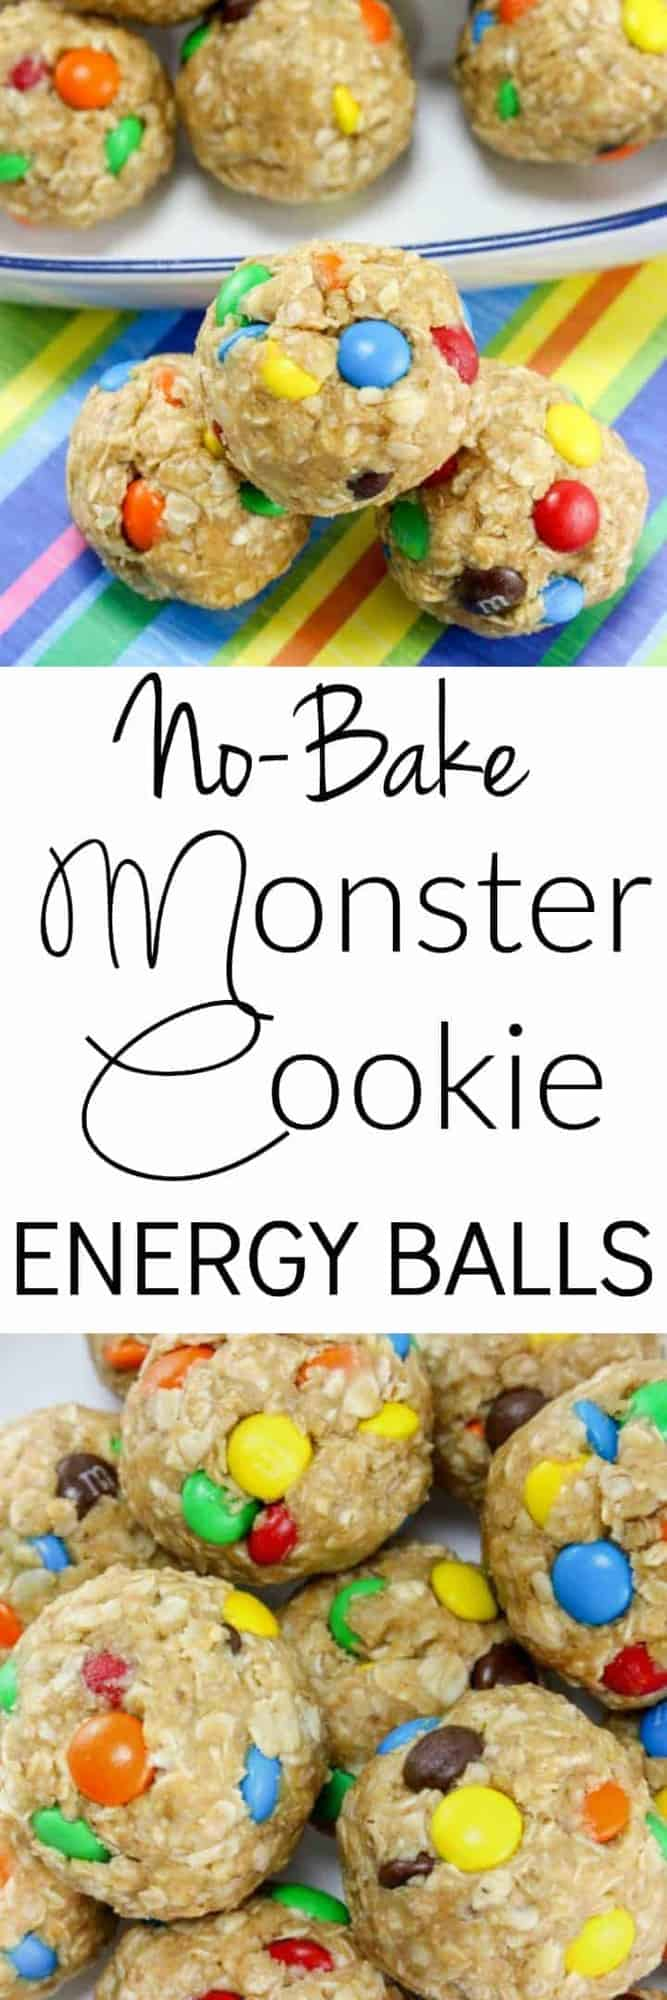 These No-Bake Monster Cookie Oatmeal Energy Balls are so easy to make and are the perfect healthy after school snack